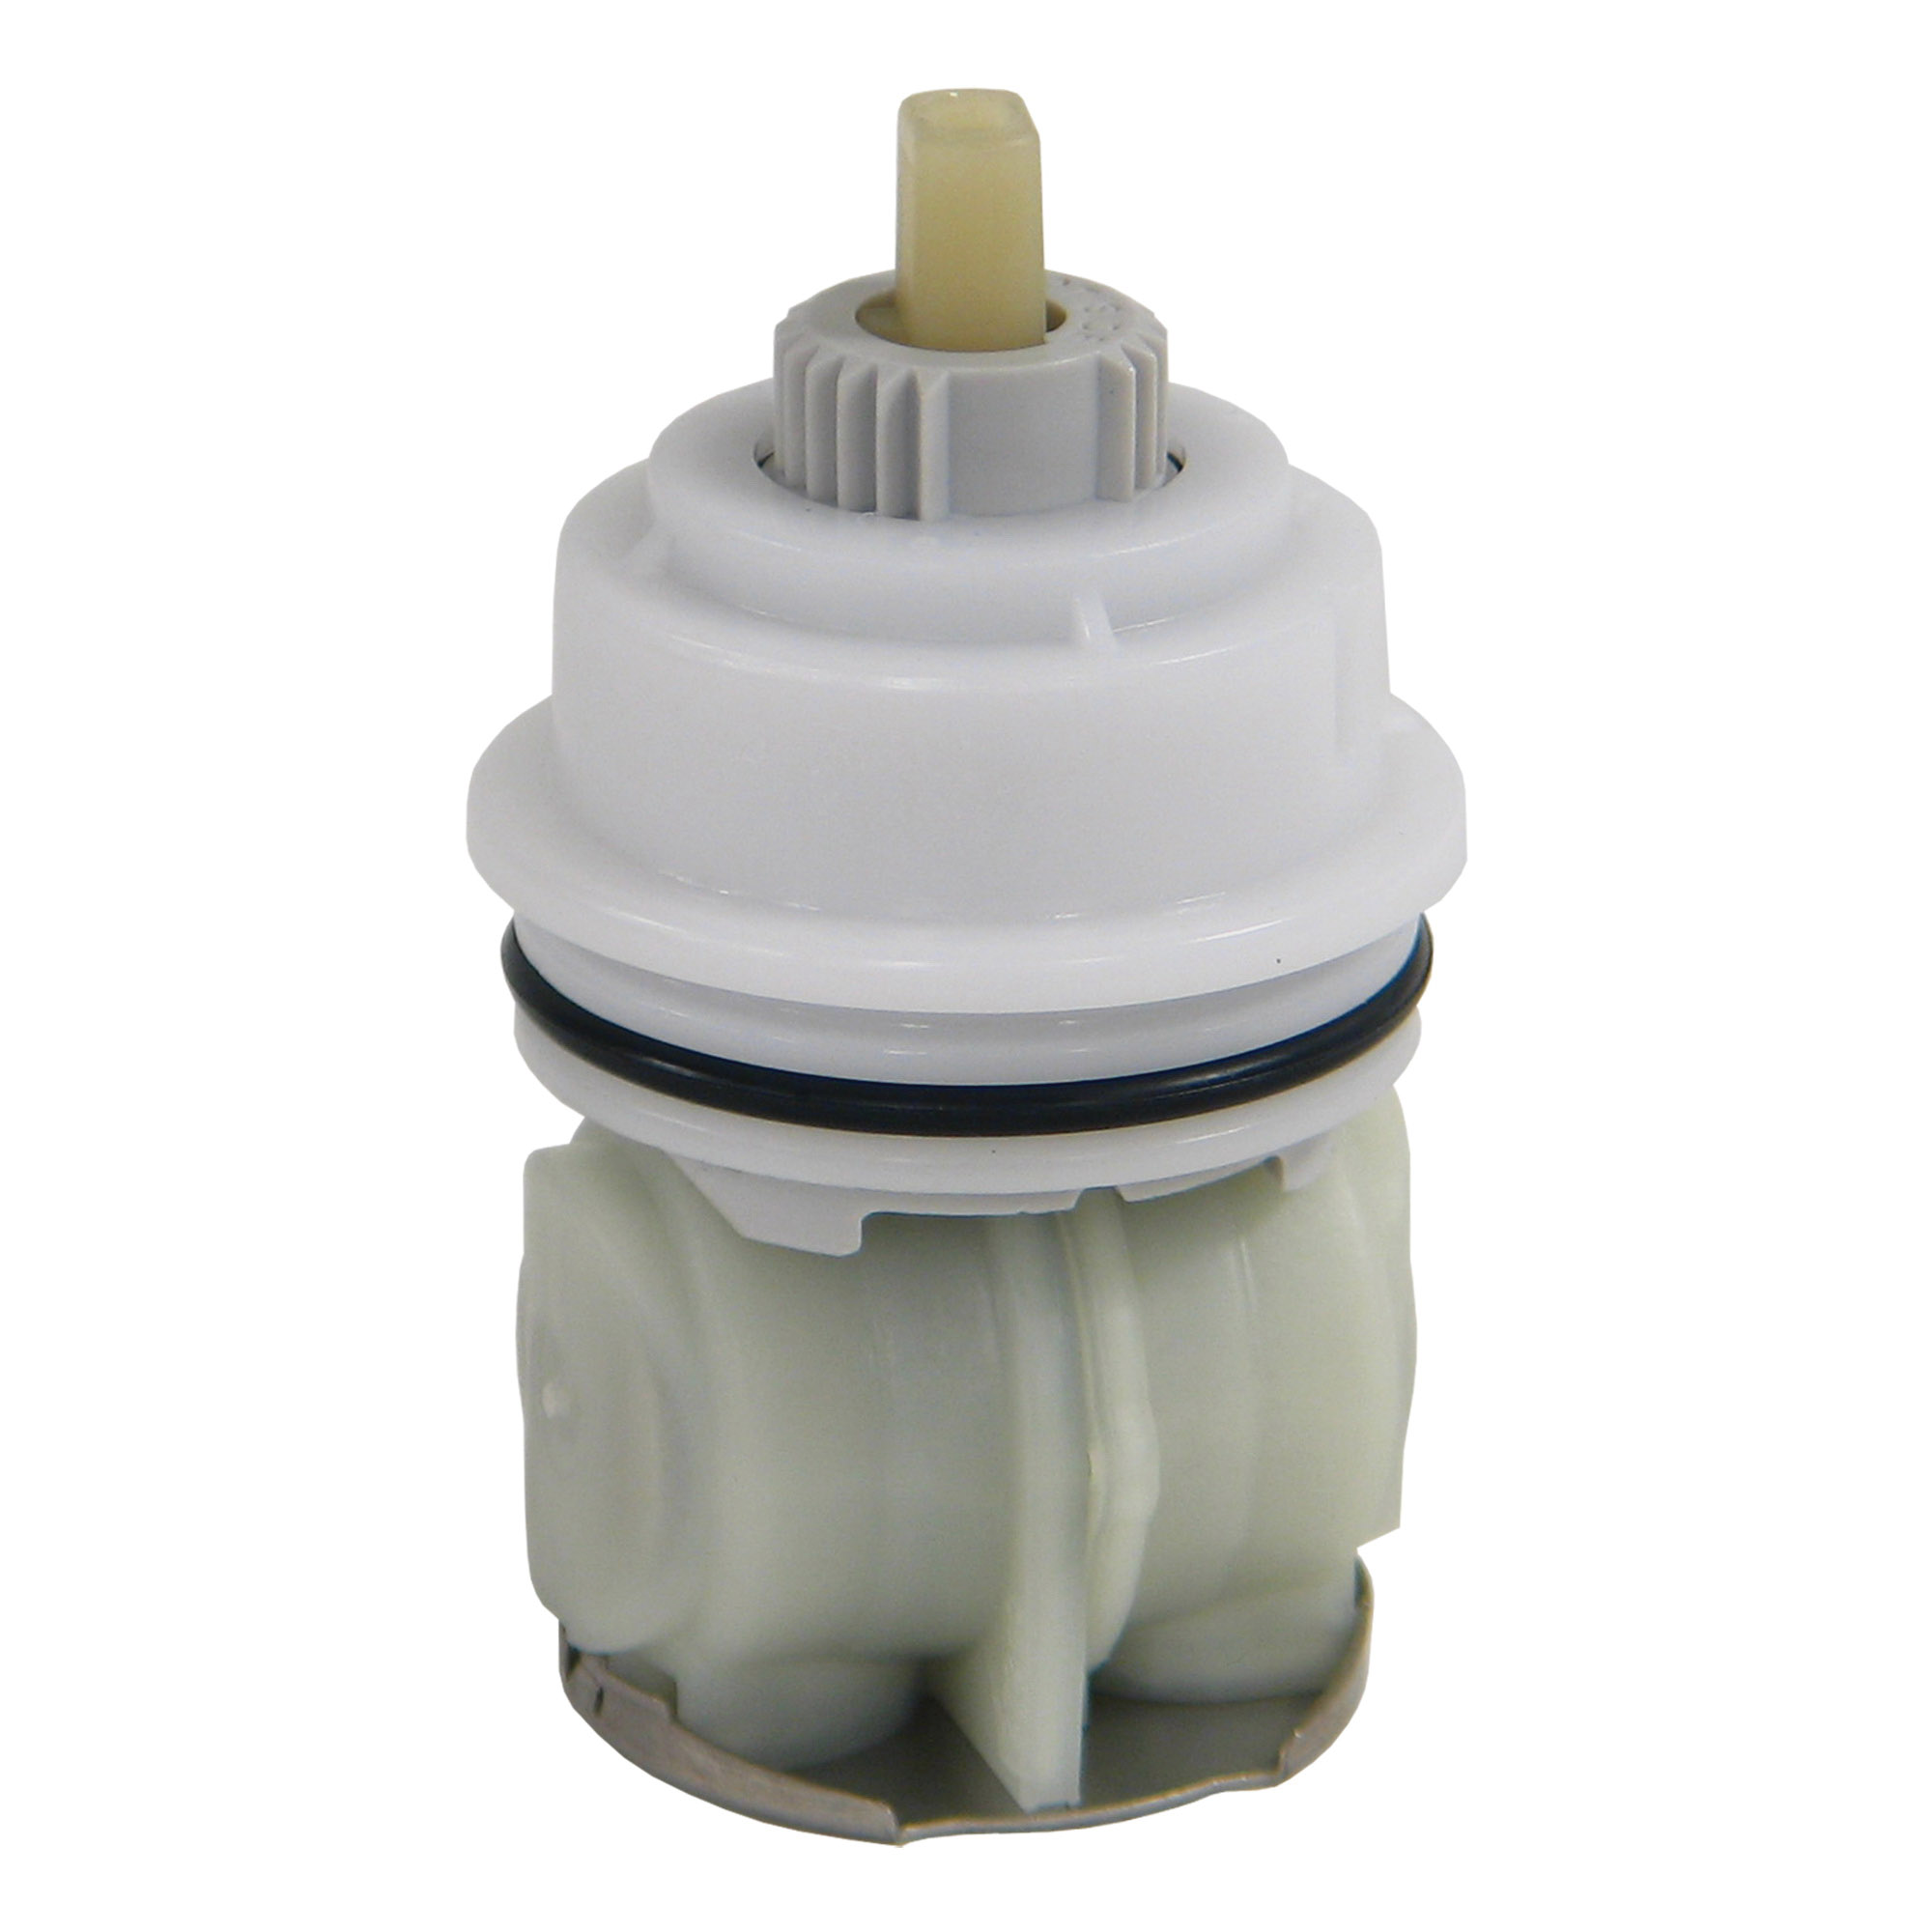 Kissler KRP32104 OEM Cartridge, For Use With American Standard Faucet, 3-1/4 in H